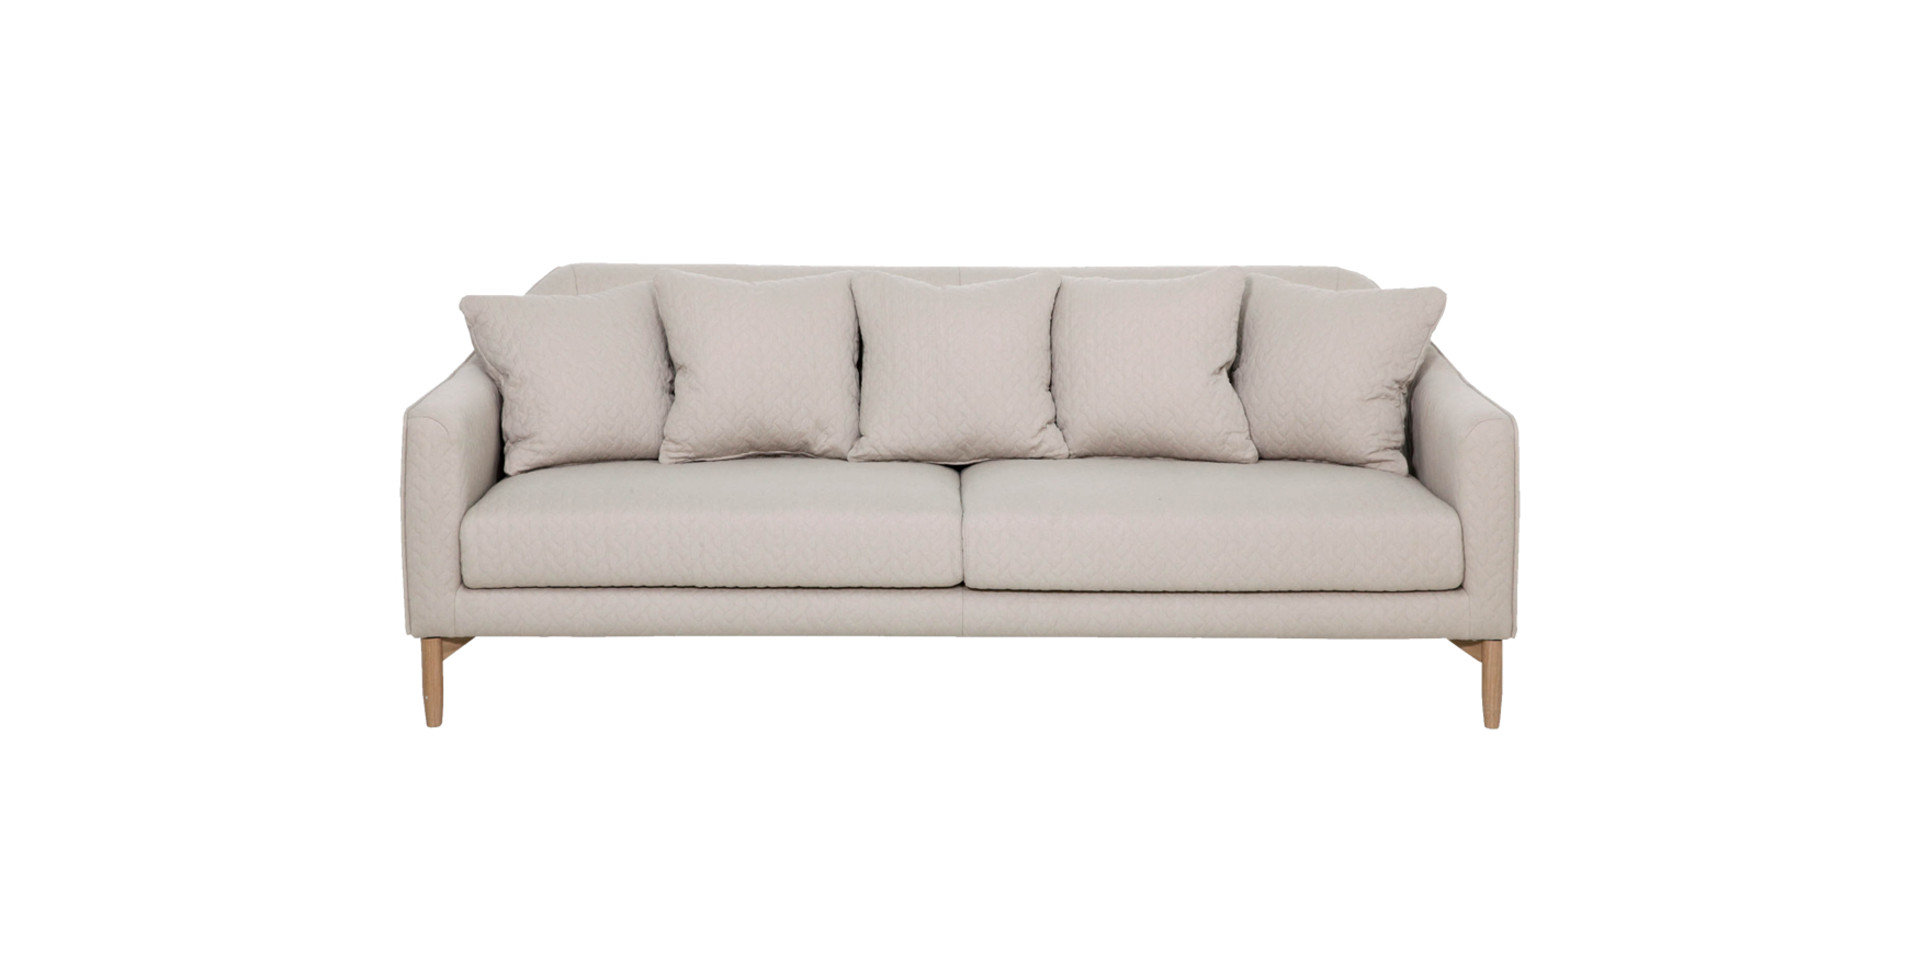 sits-ivy-canape-3seater_zara02_beige_1